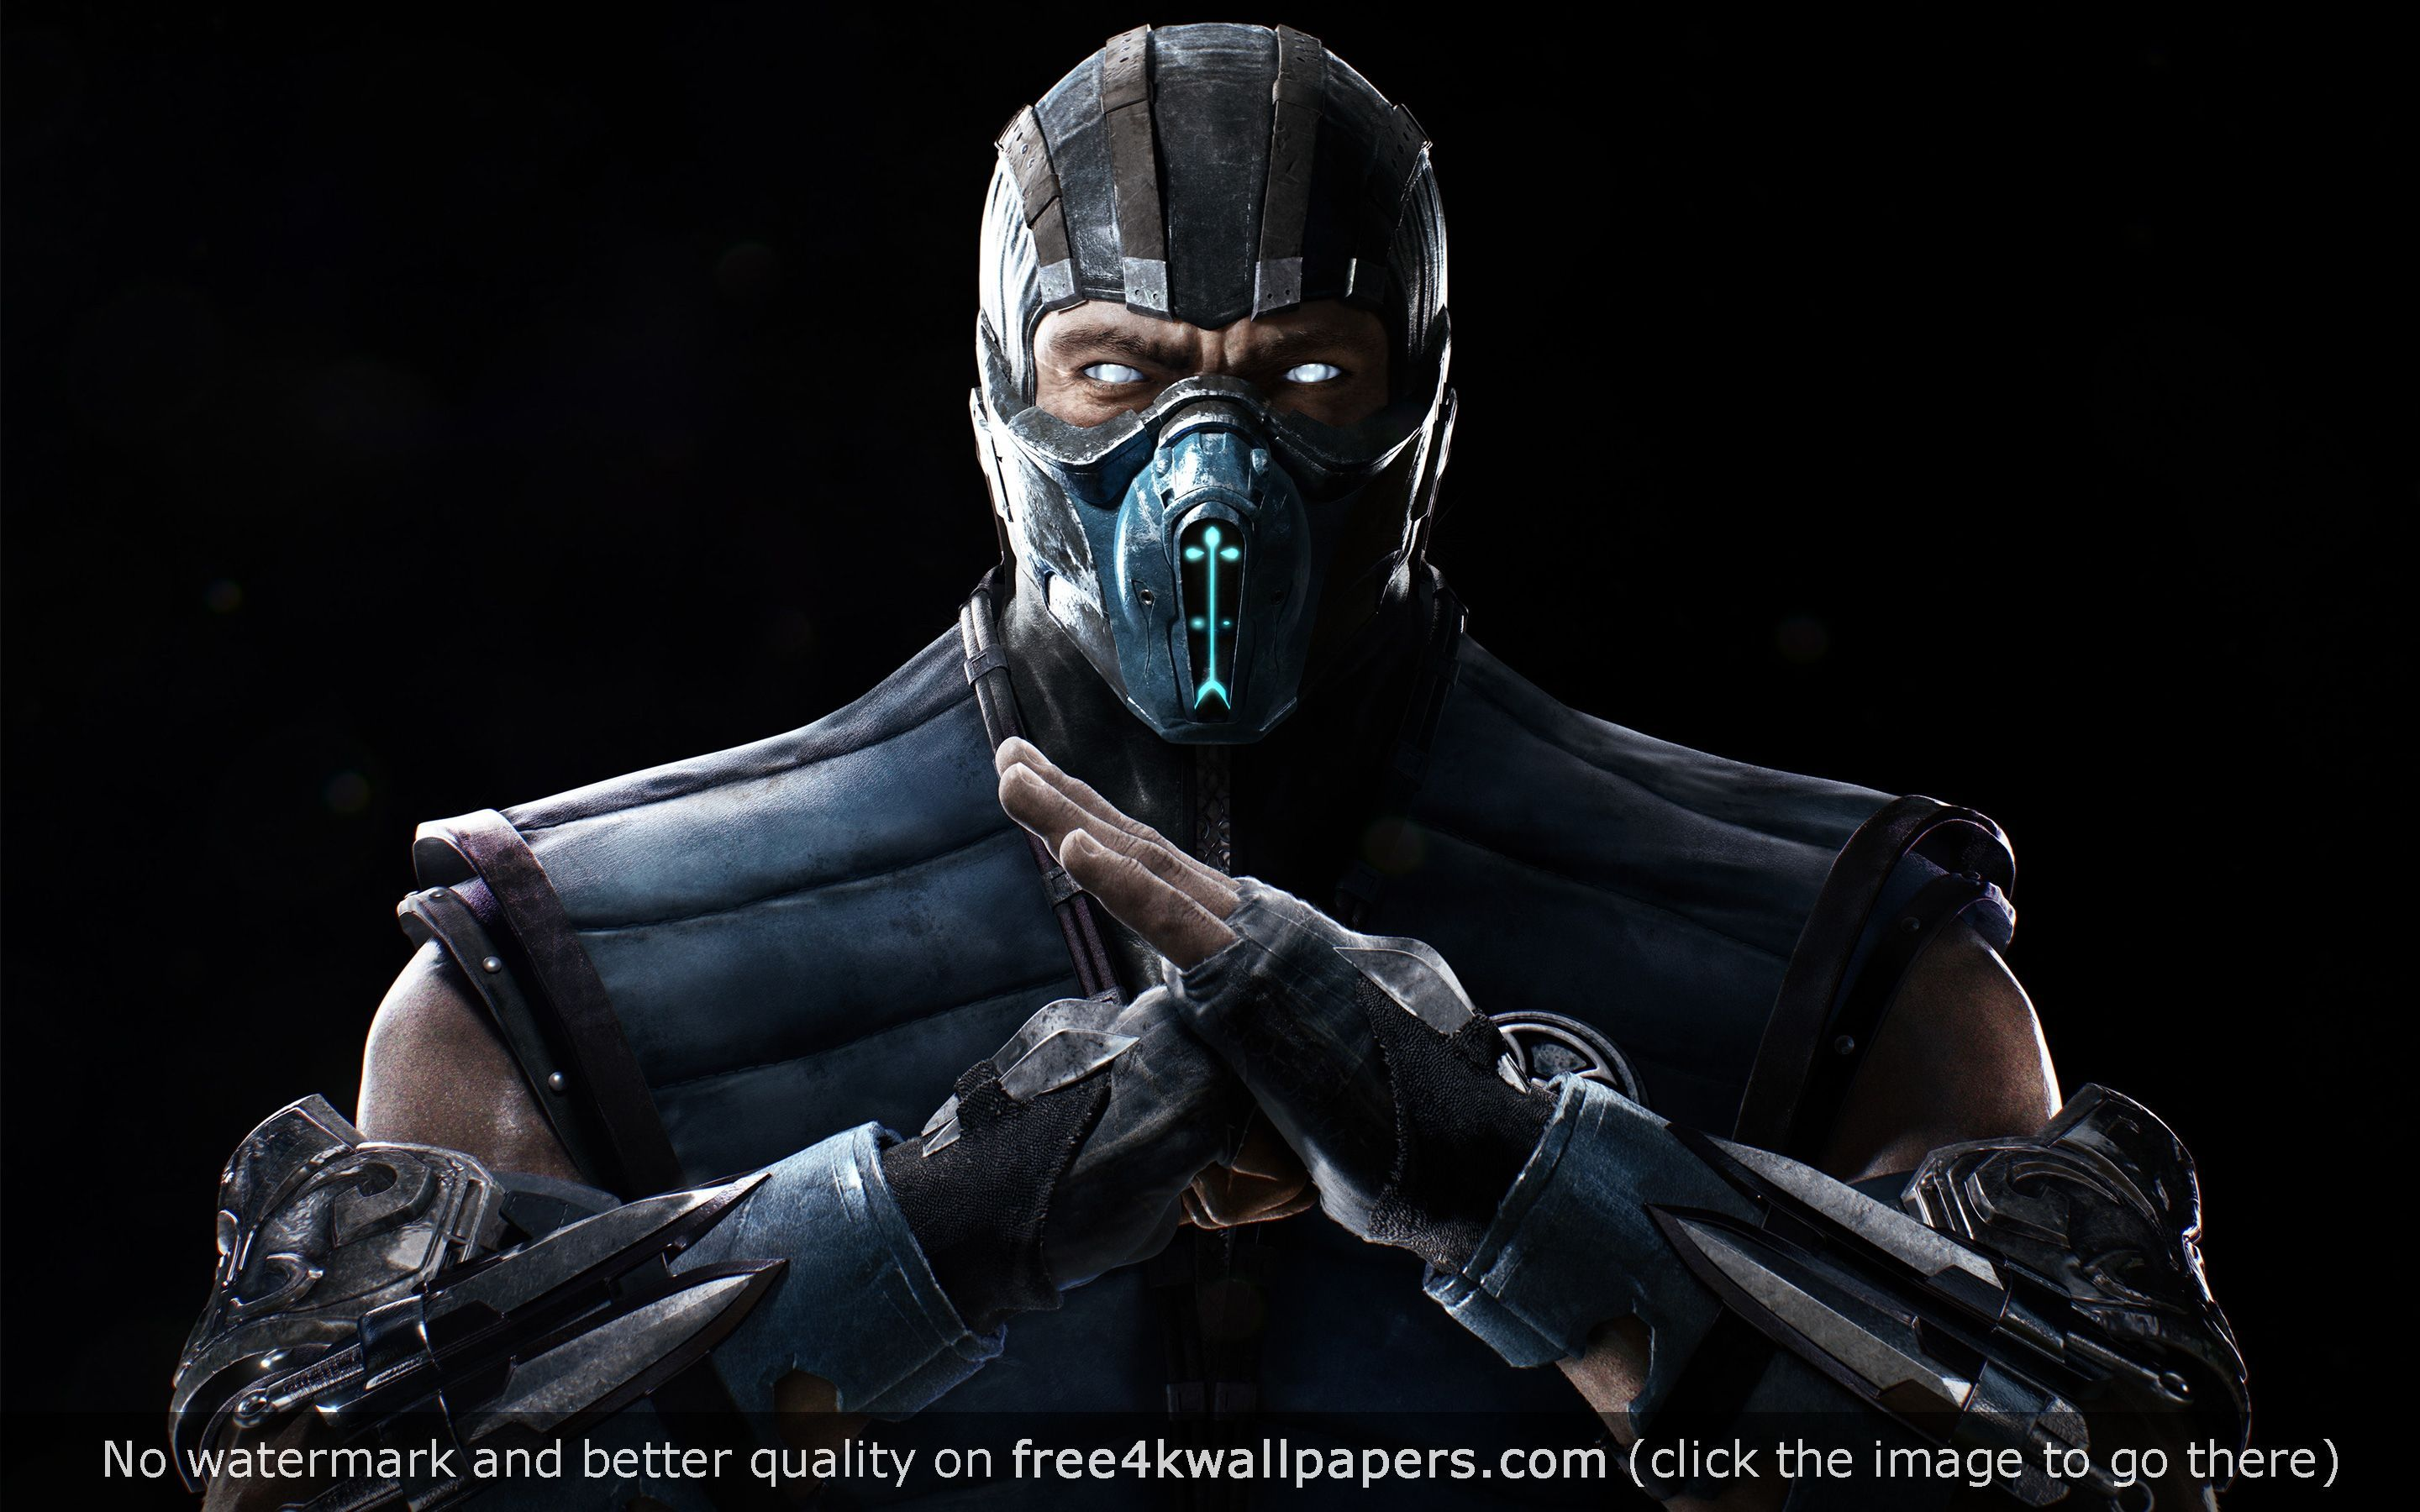 Mortal Kombat X Sub Zero 4k 5k Hd Wallpaper Sub Zero Mortal Kombat Gaming Wallpapers Hd Mortal Kombat X Wallpapers